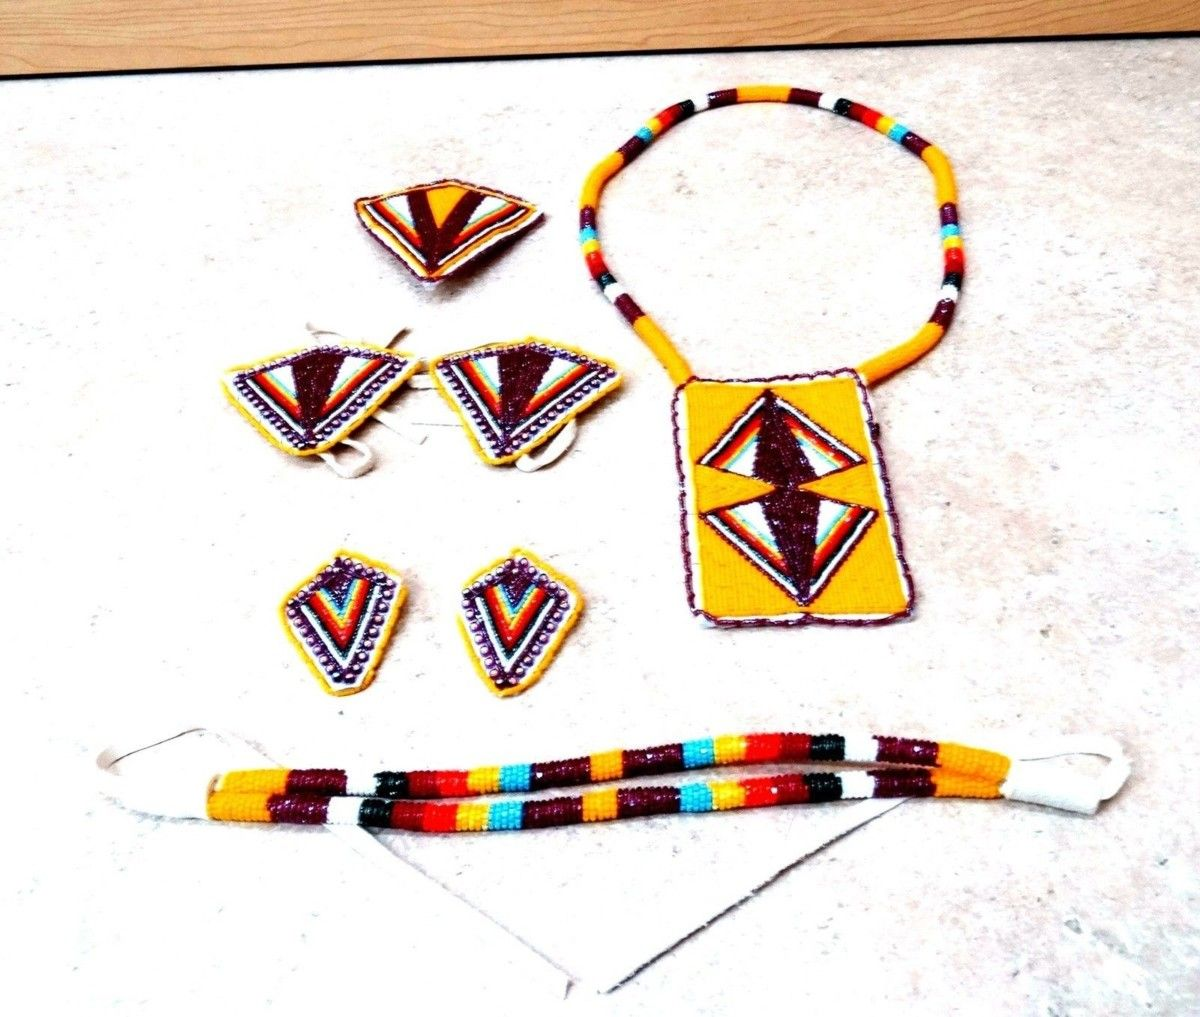 NICE MATCHING 7 PIECE HAND CRAFTED CUT BEADED NATIVE AMERICAN INDIAN DANCE SET!   #NativeAmerican #Arts #Crafts